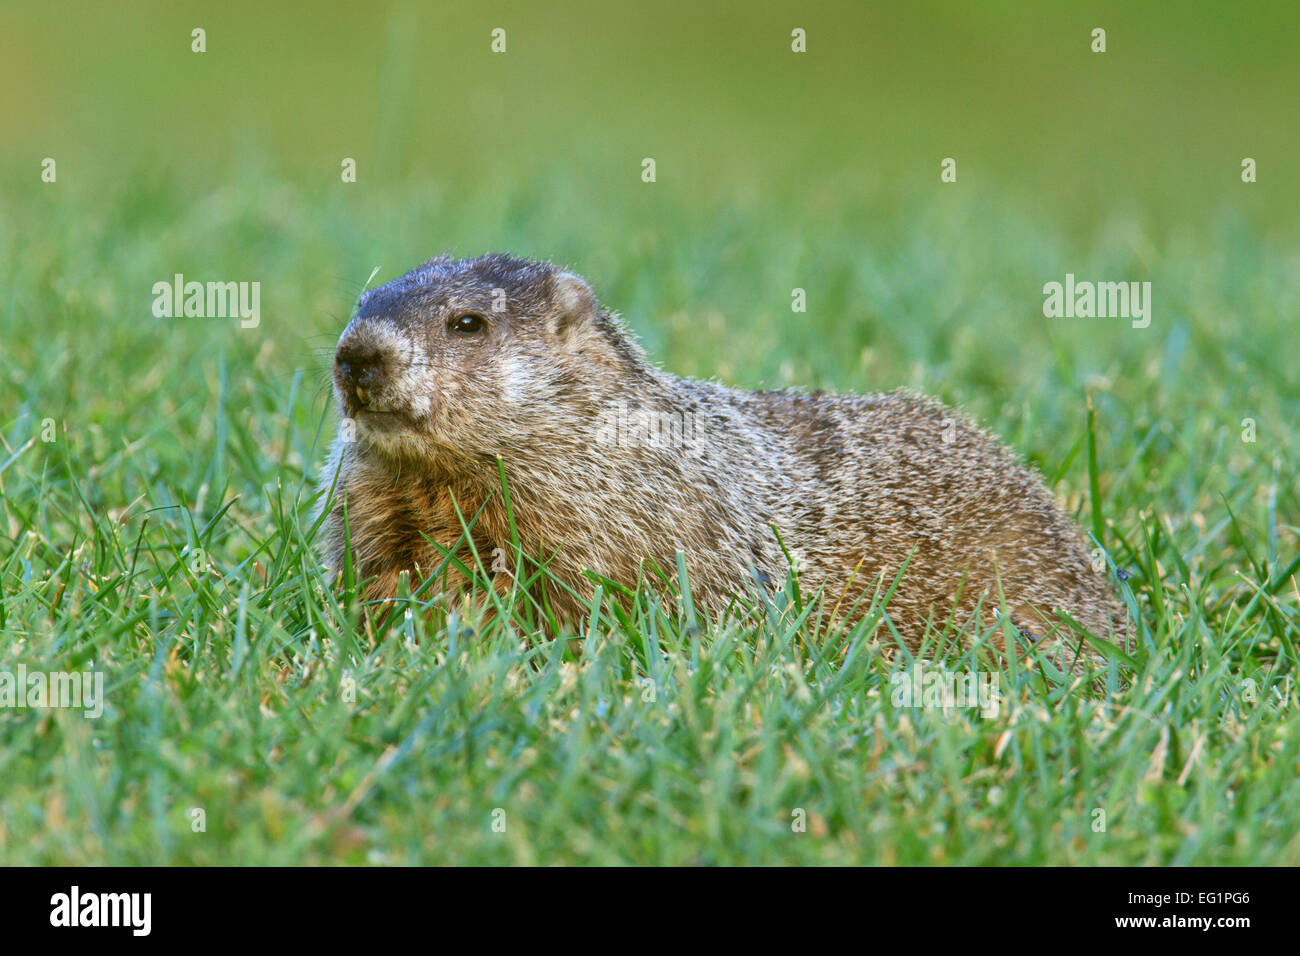 Groundhog (Marmota monax) in a grassy field. - Stock Image